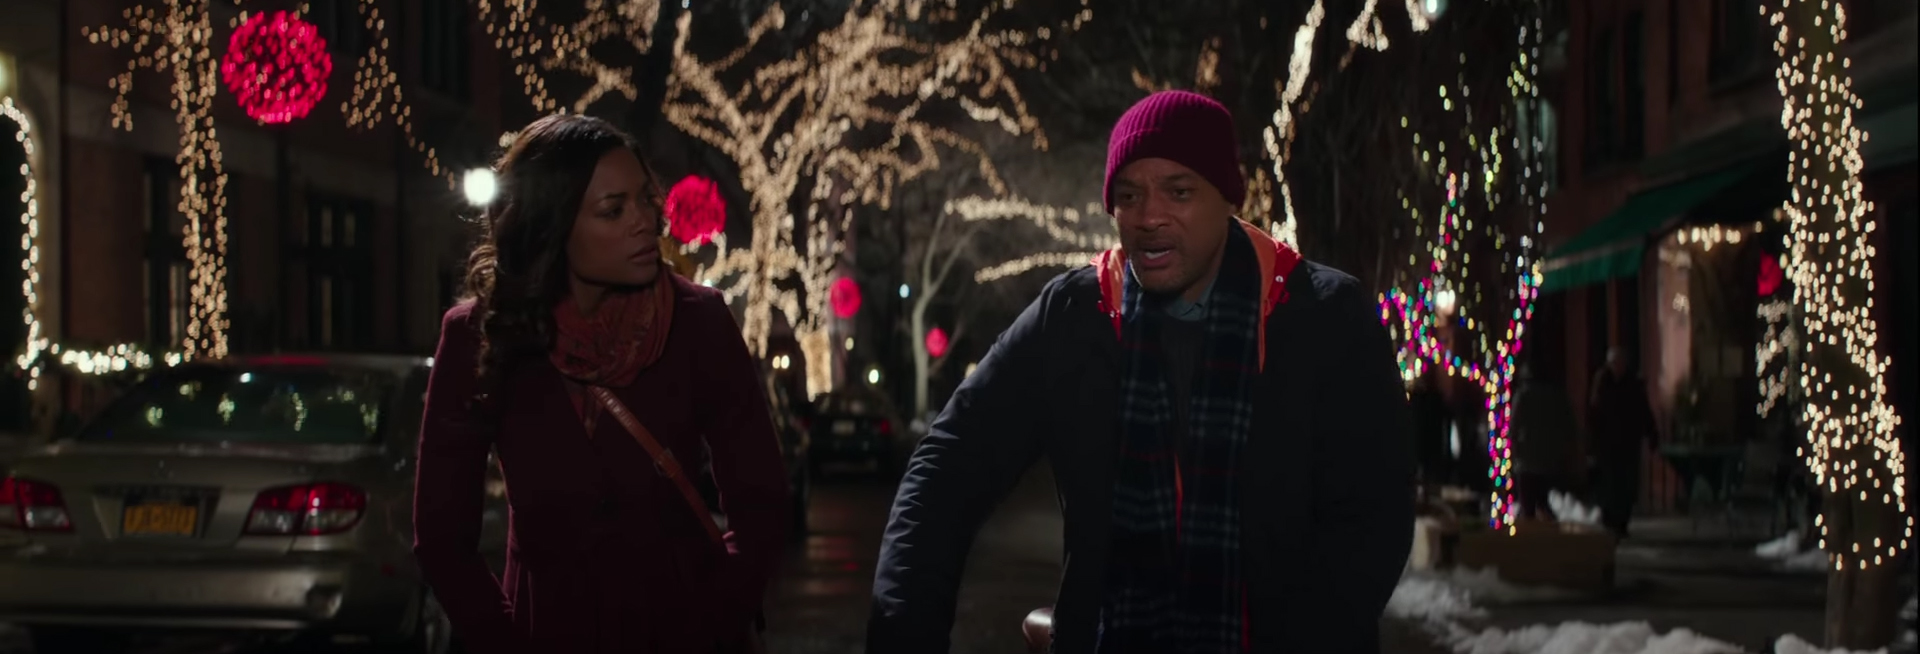 Collateral Beauty. Image Credit: Warner Bros.